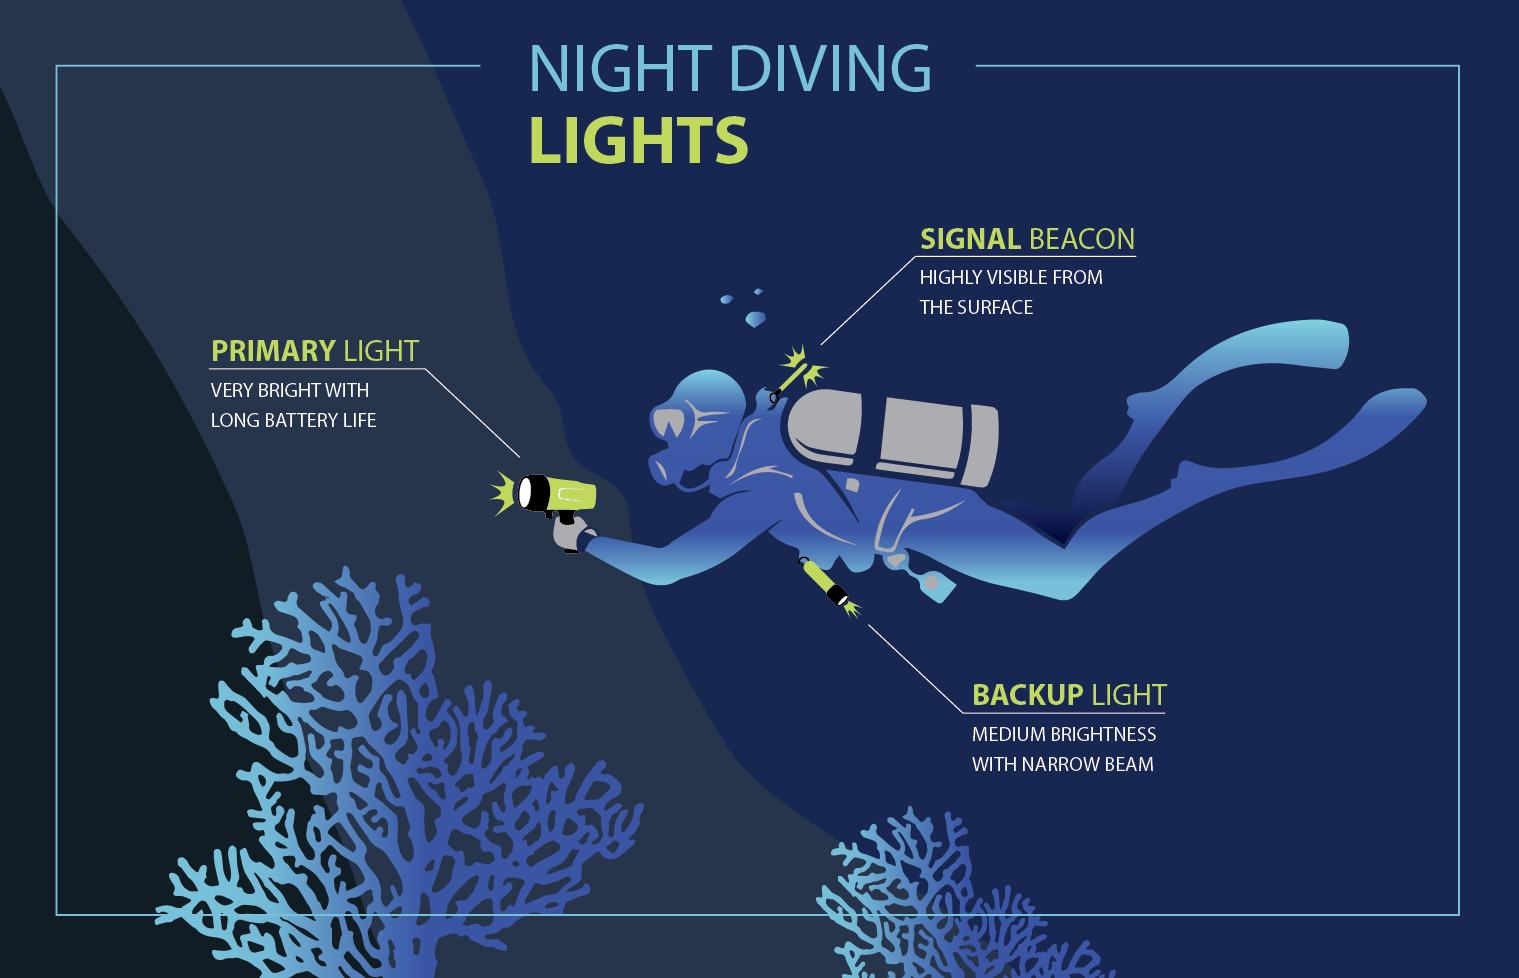 Night Diving Lights